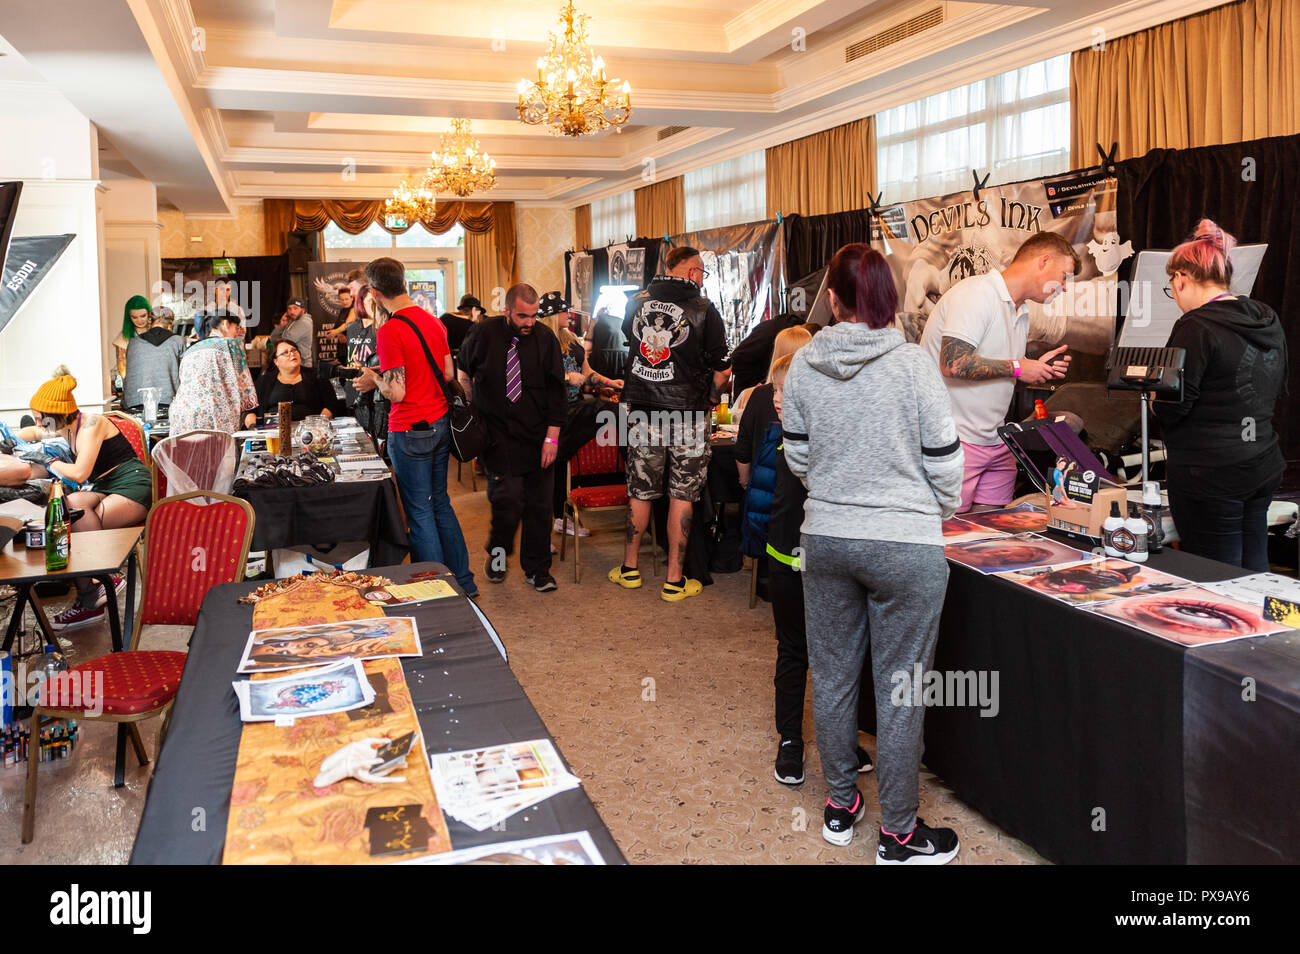 Skibbereen, West Cork, Ireland. 20th Oct, 2018. There was a big attendance at the show. The show has been attended by many tattooists from across Ireland and the North. The event finishes tomorrow. Credit: Andy Gibson/Alamy Live News. Stock Photo